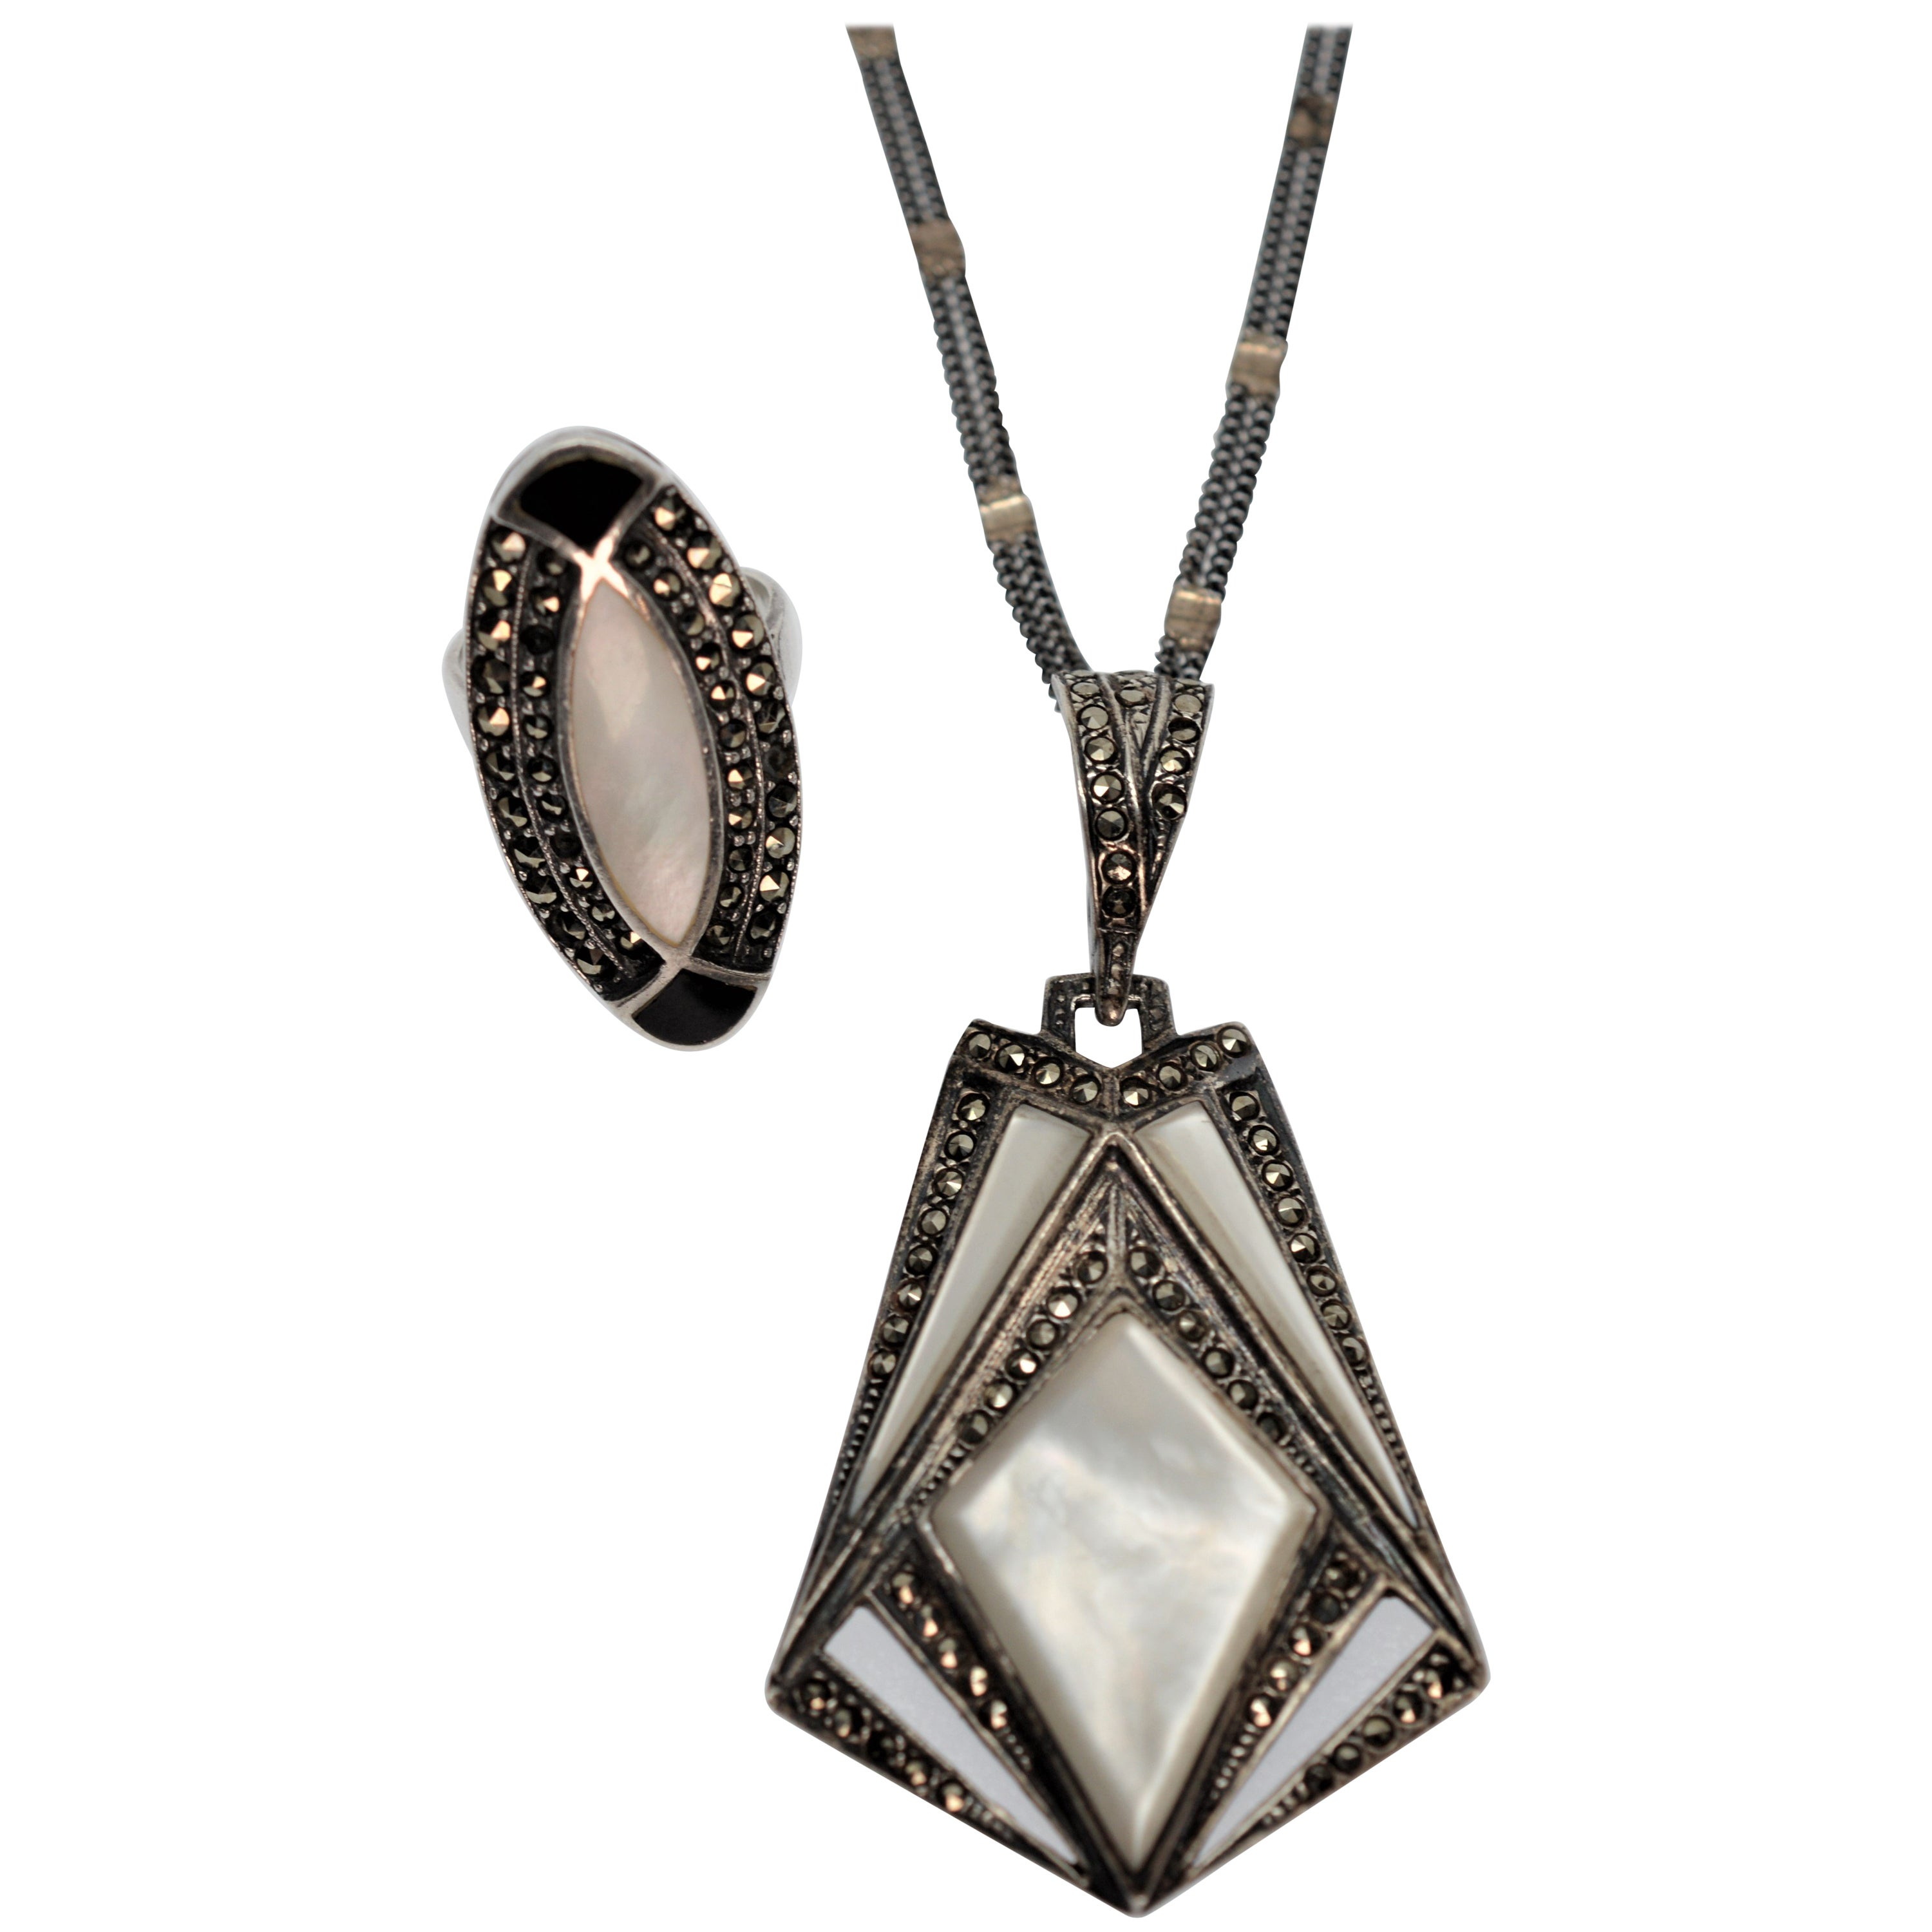 Vintage Sterling Silver, Marcasite, Mother of Pearl Pendant Necklace & Ring